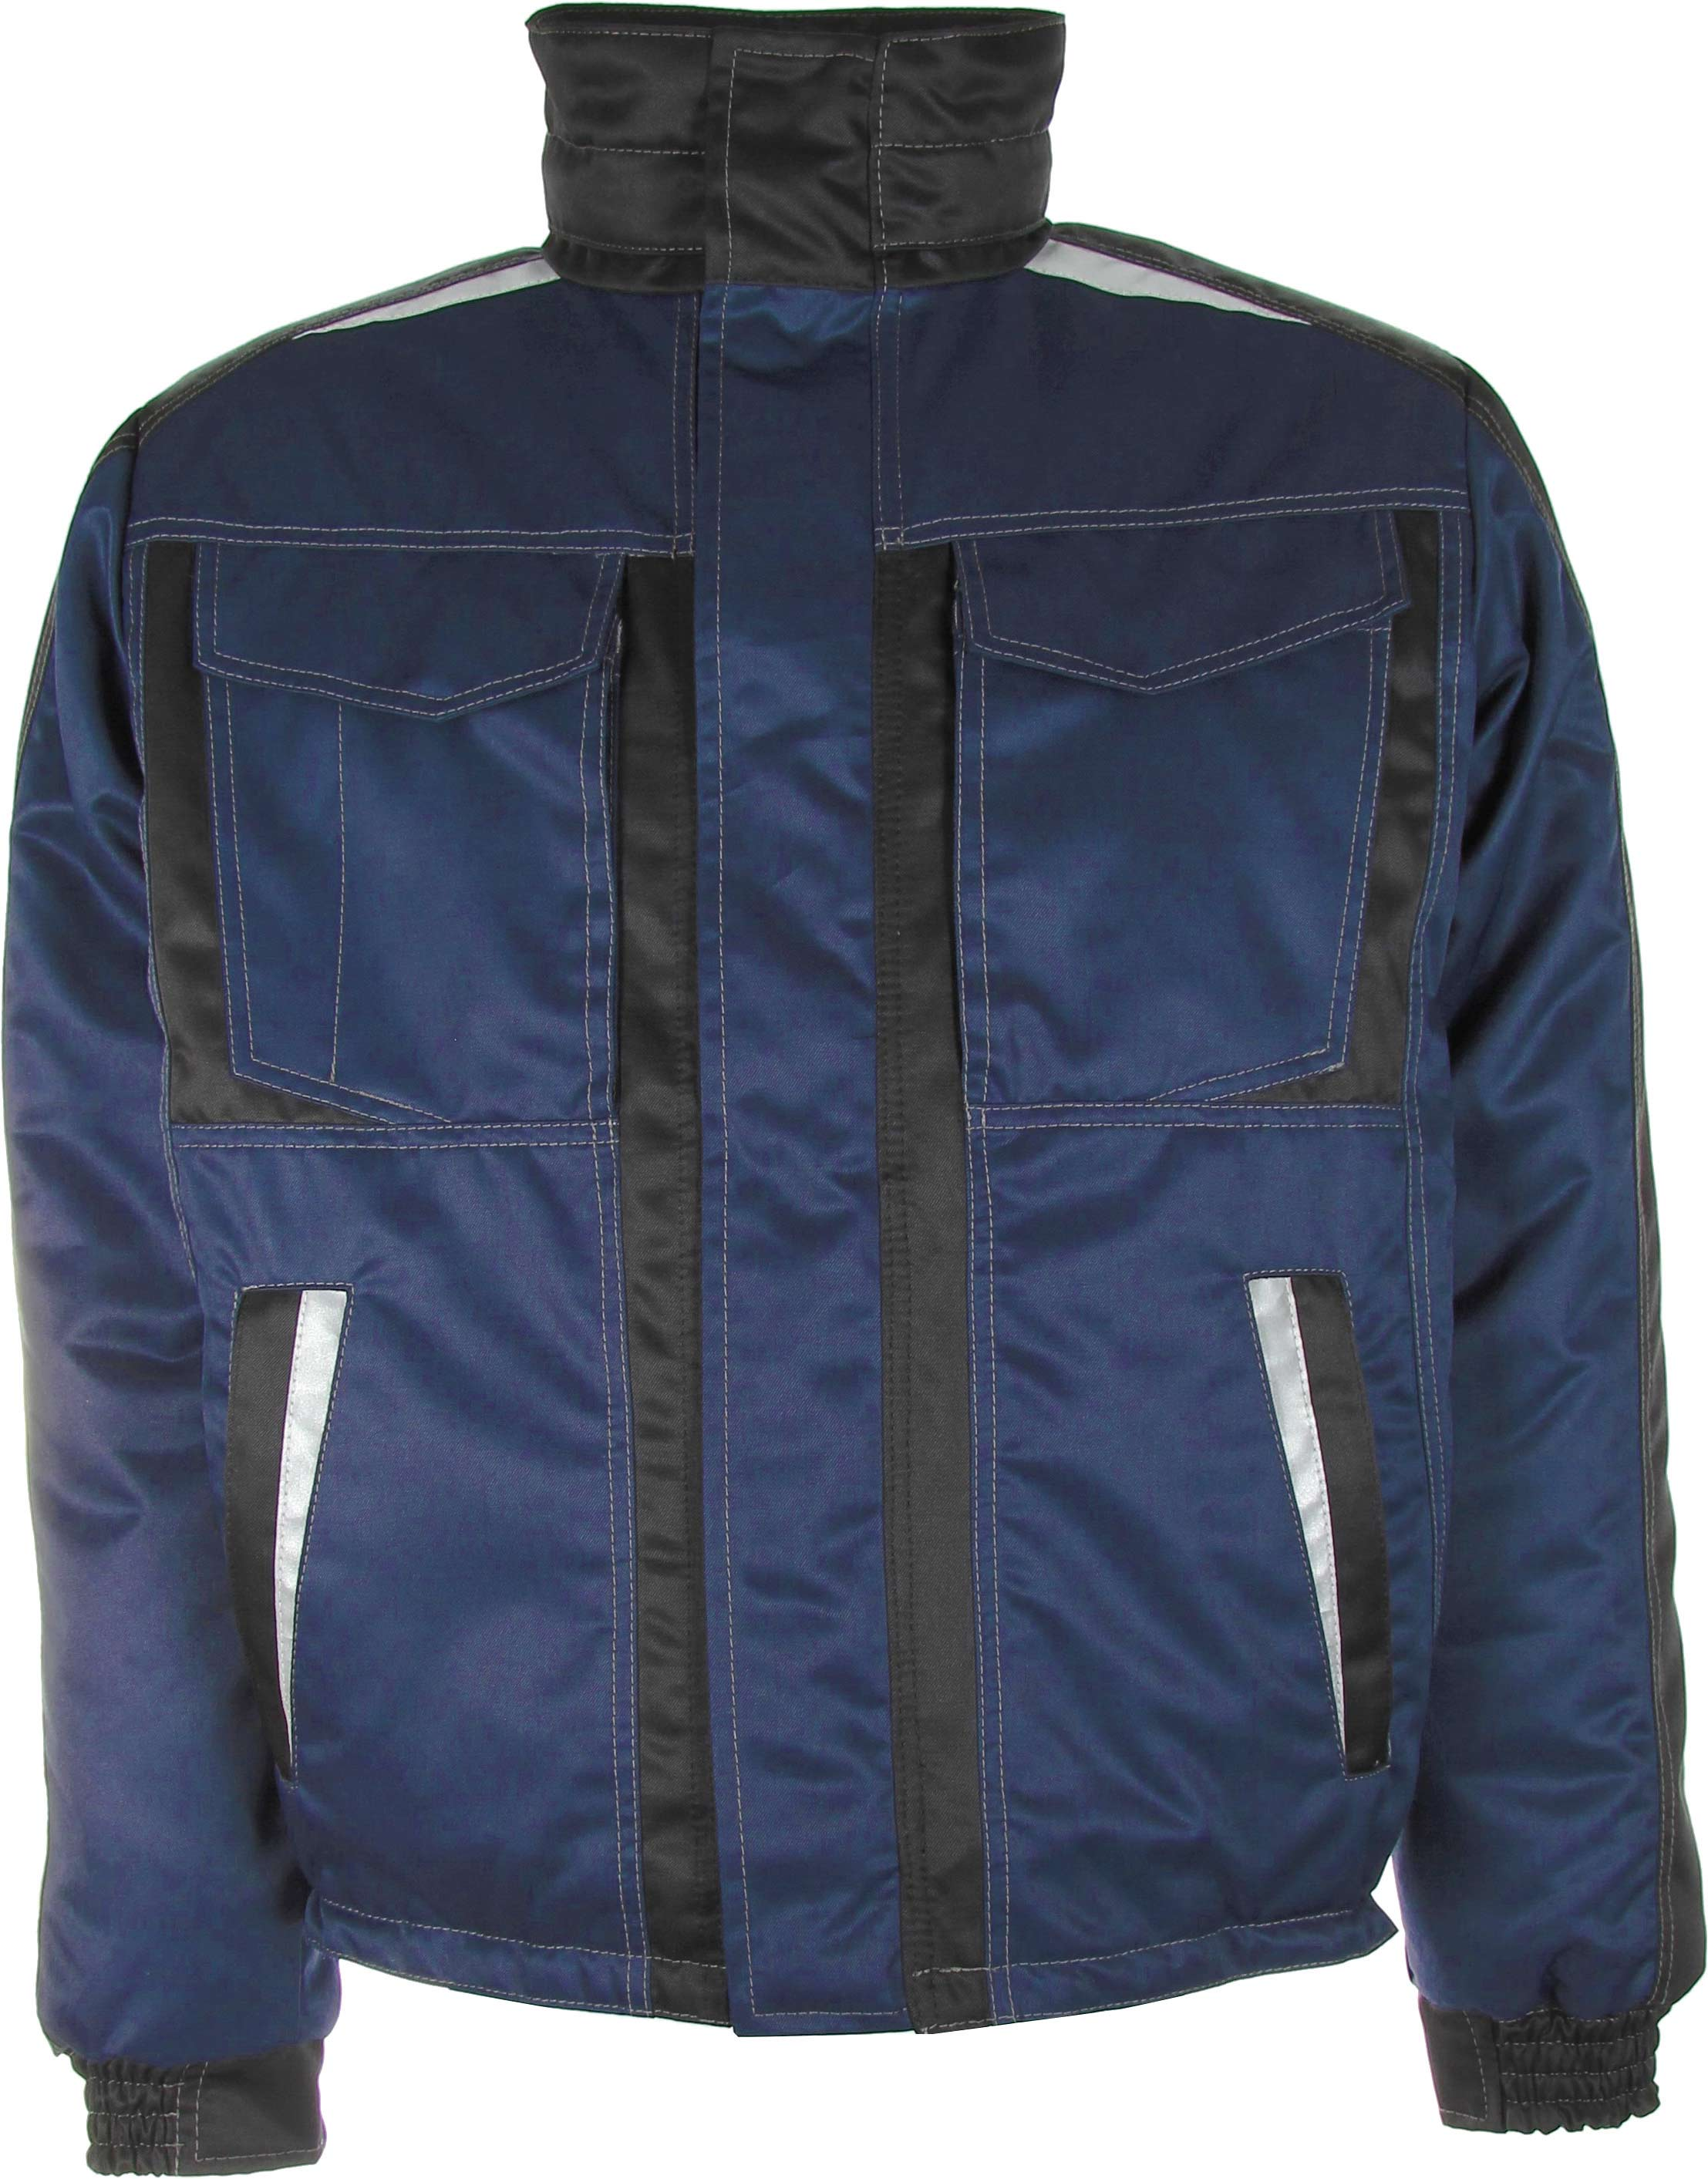 Winter Arbeitsjacke blau